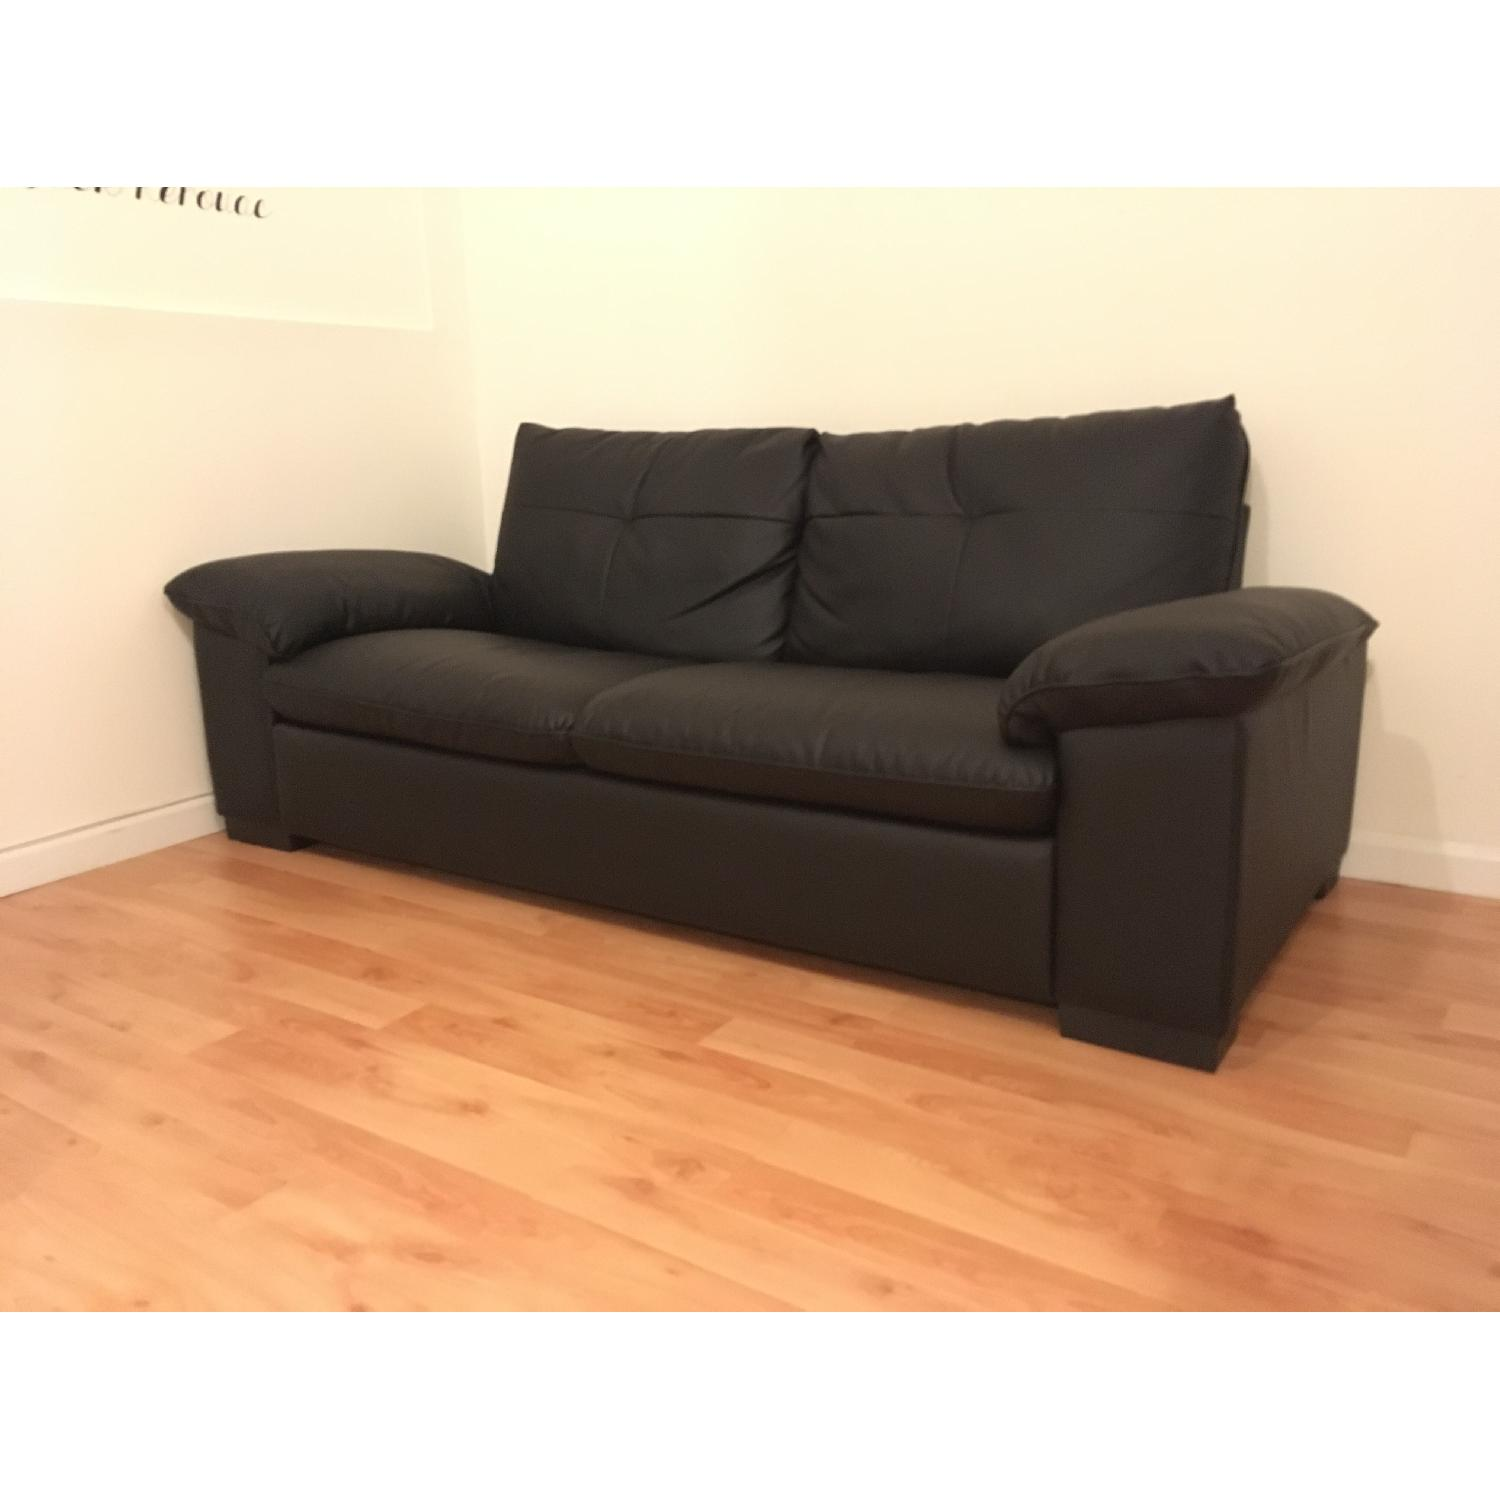 Ikea Dagstorp 2 Seat Black Leather Sofa Aptdeco